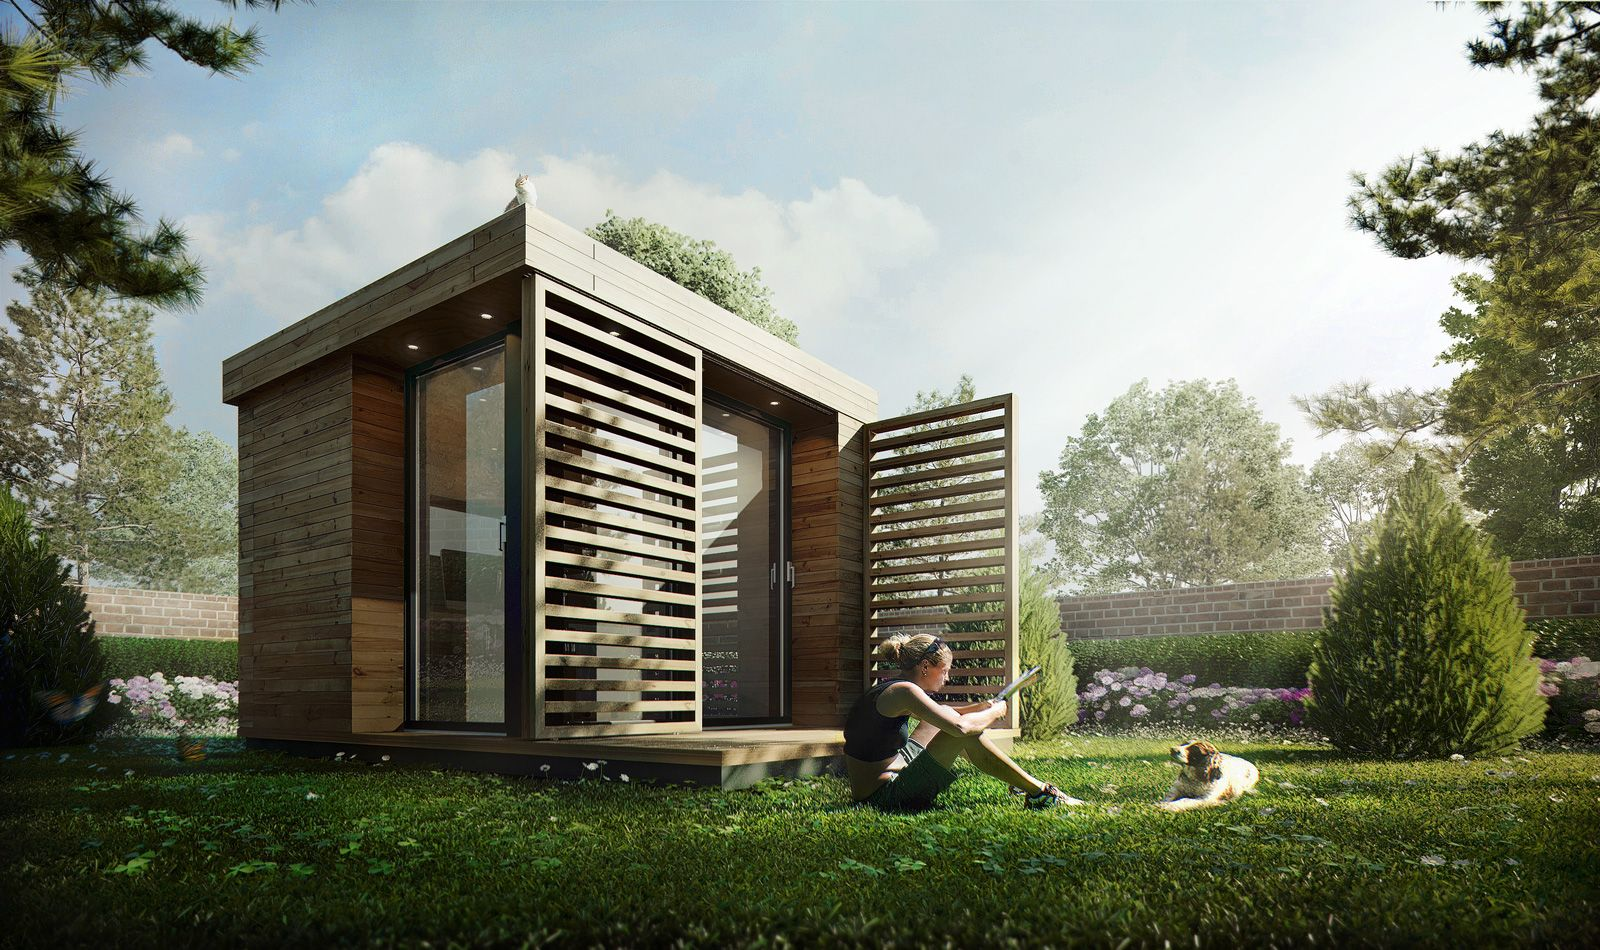 Garden office by sergio mereces cg architecture render architecture presentation - Painting exterior render model ...